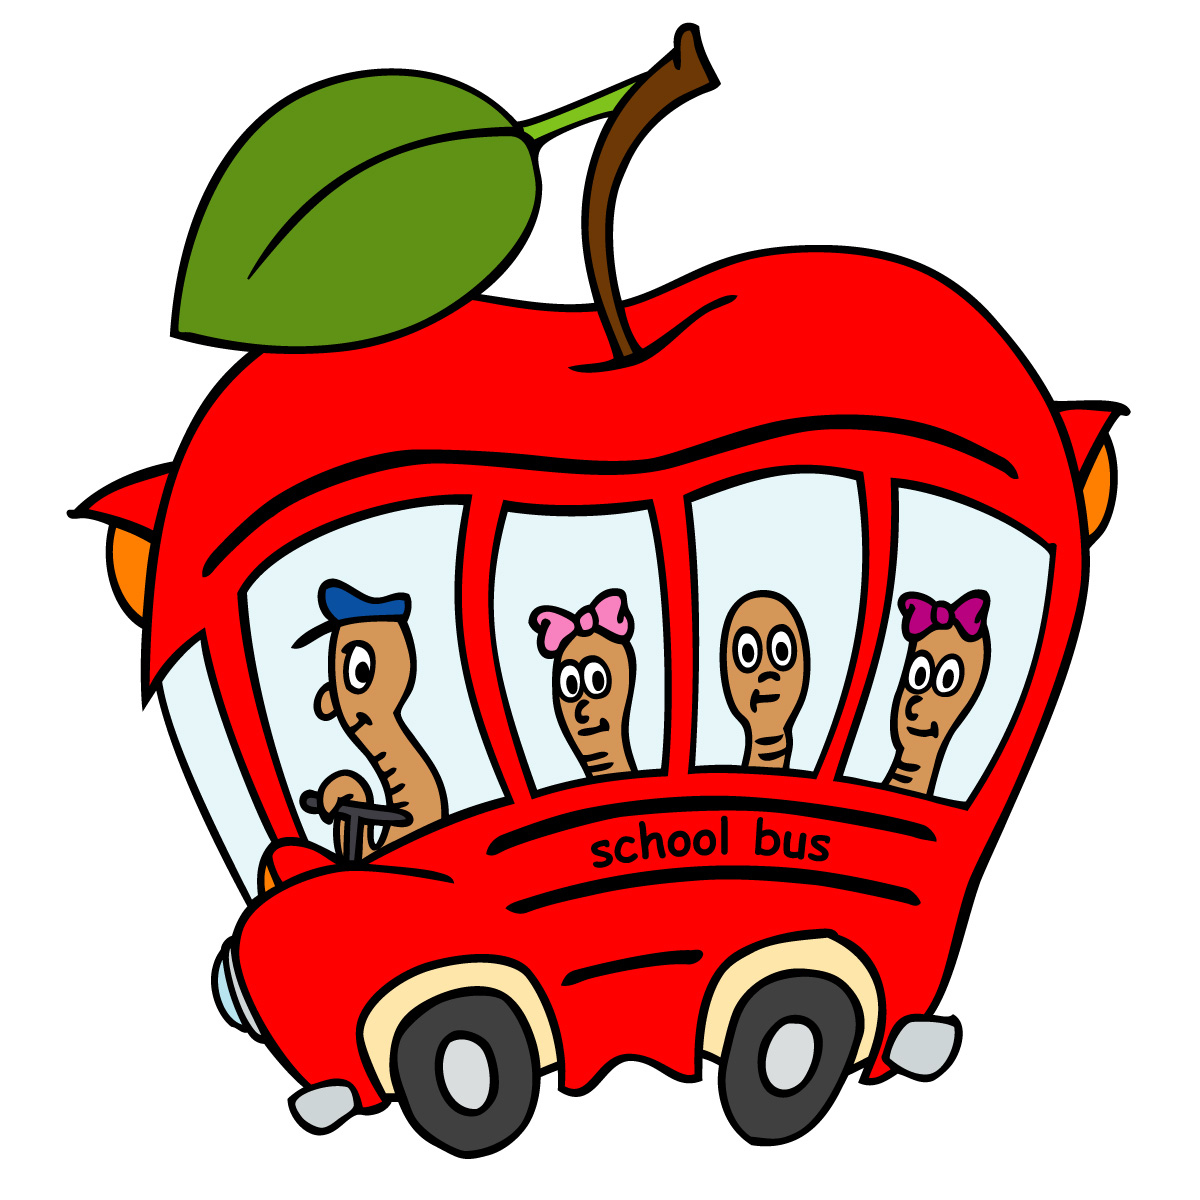 back to school bus clipart - photo #31